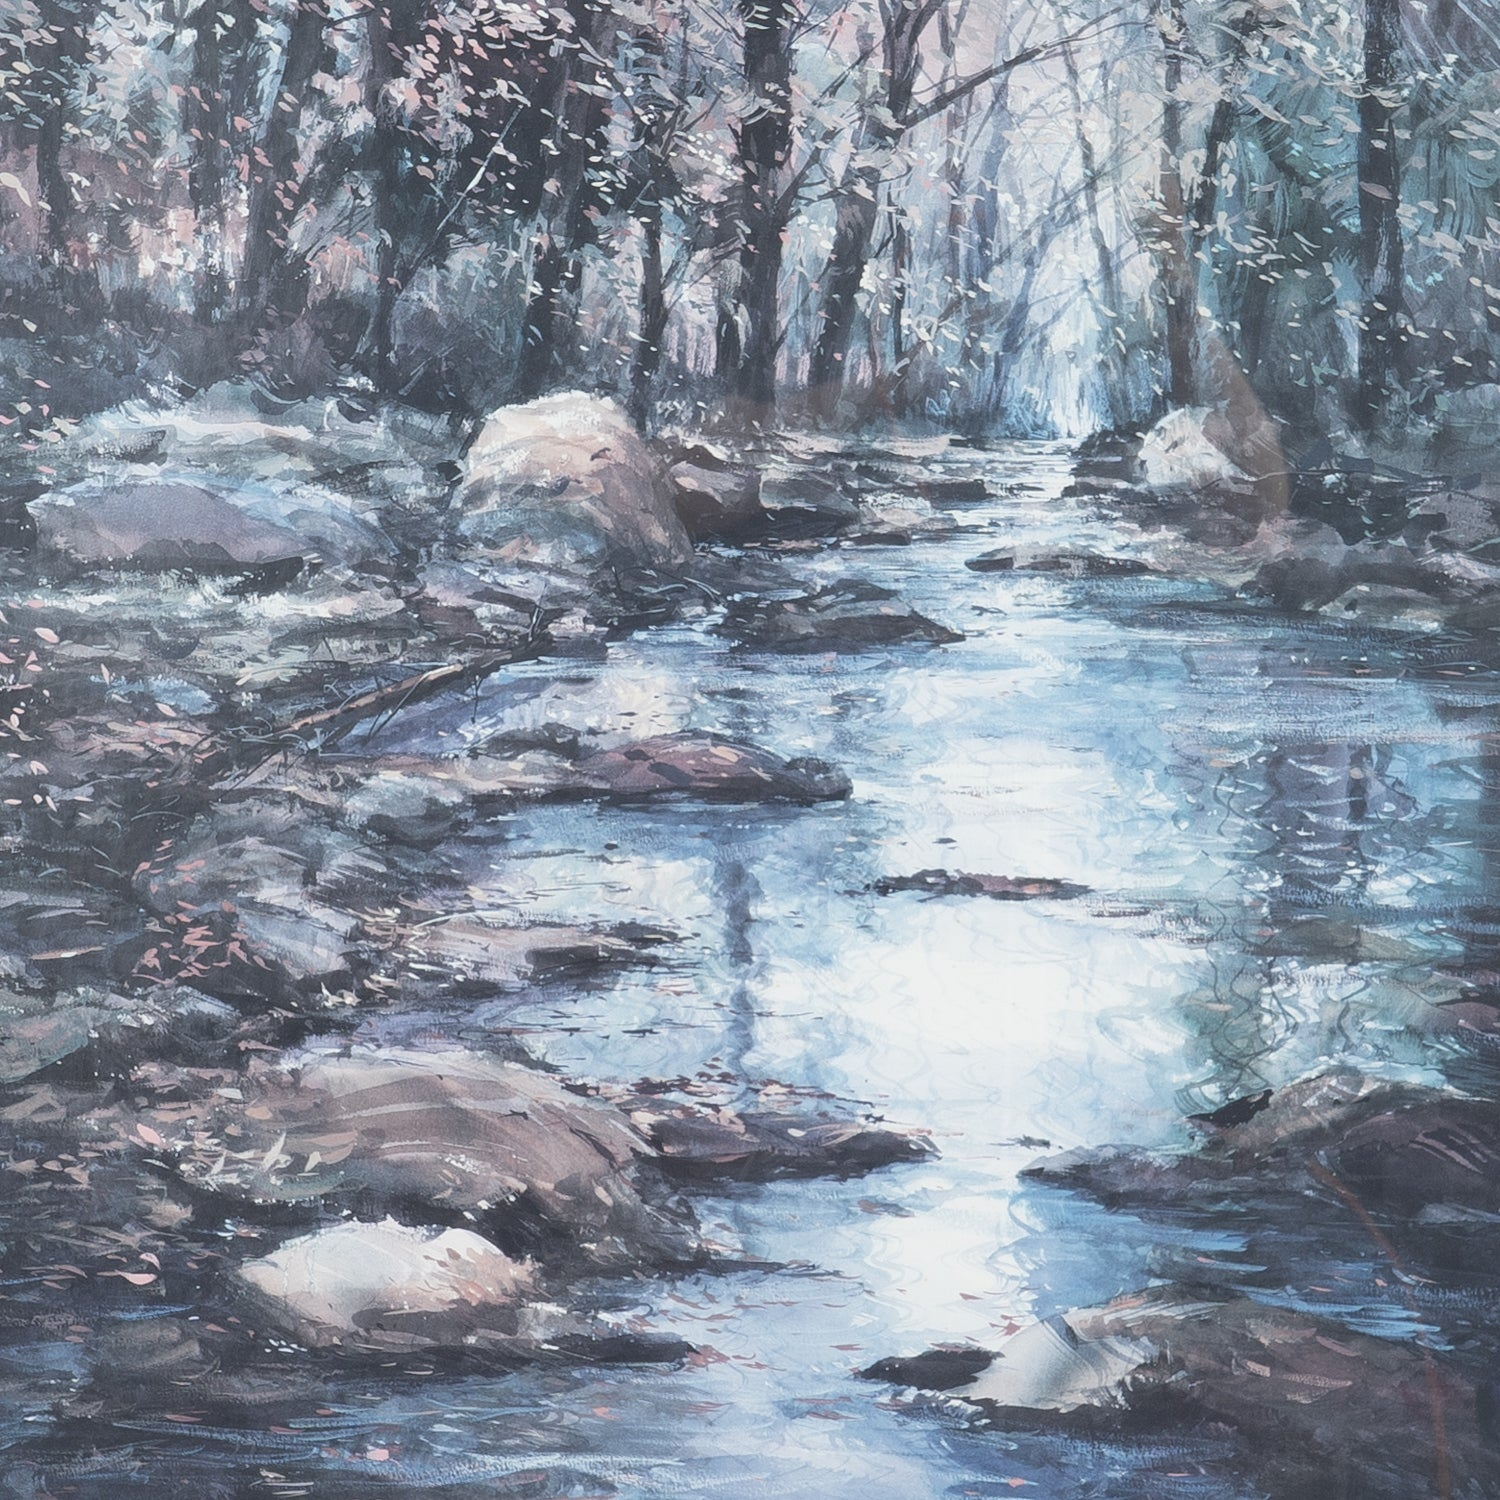 Print of Winter River Scene